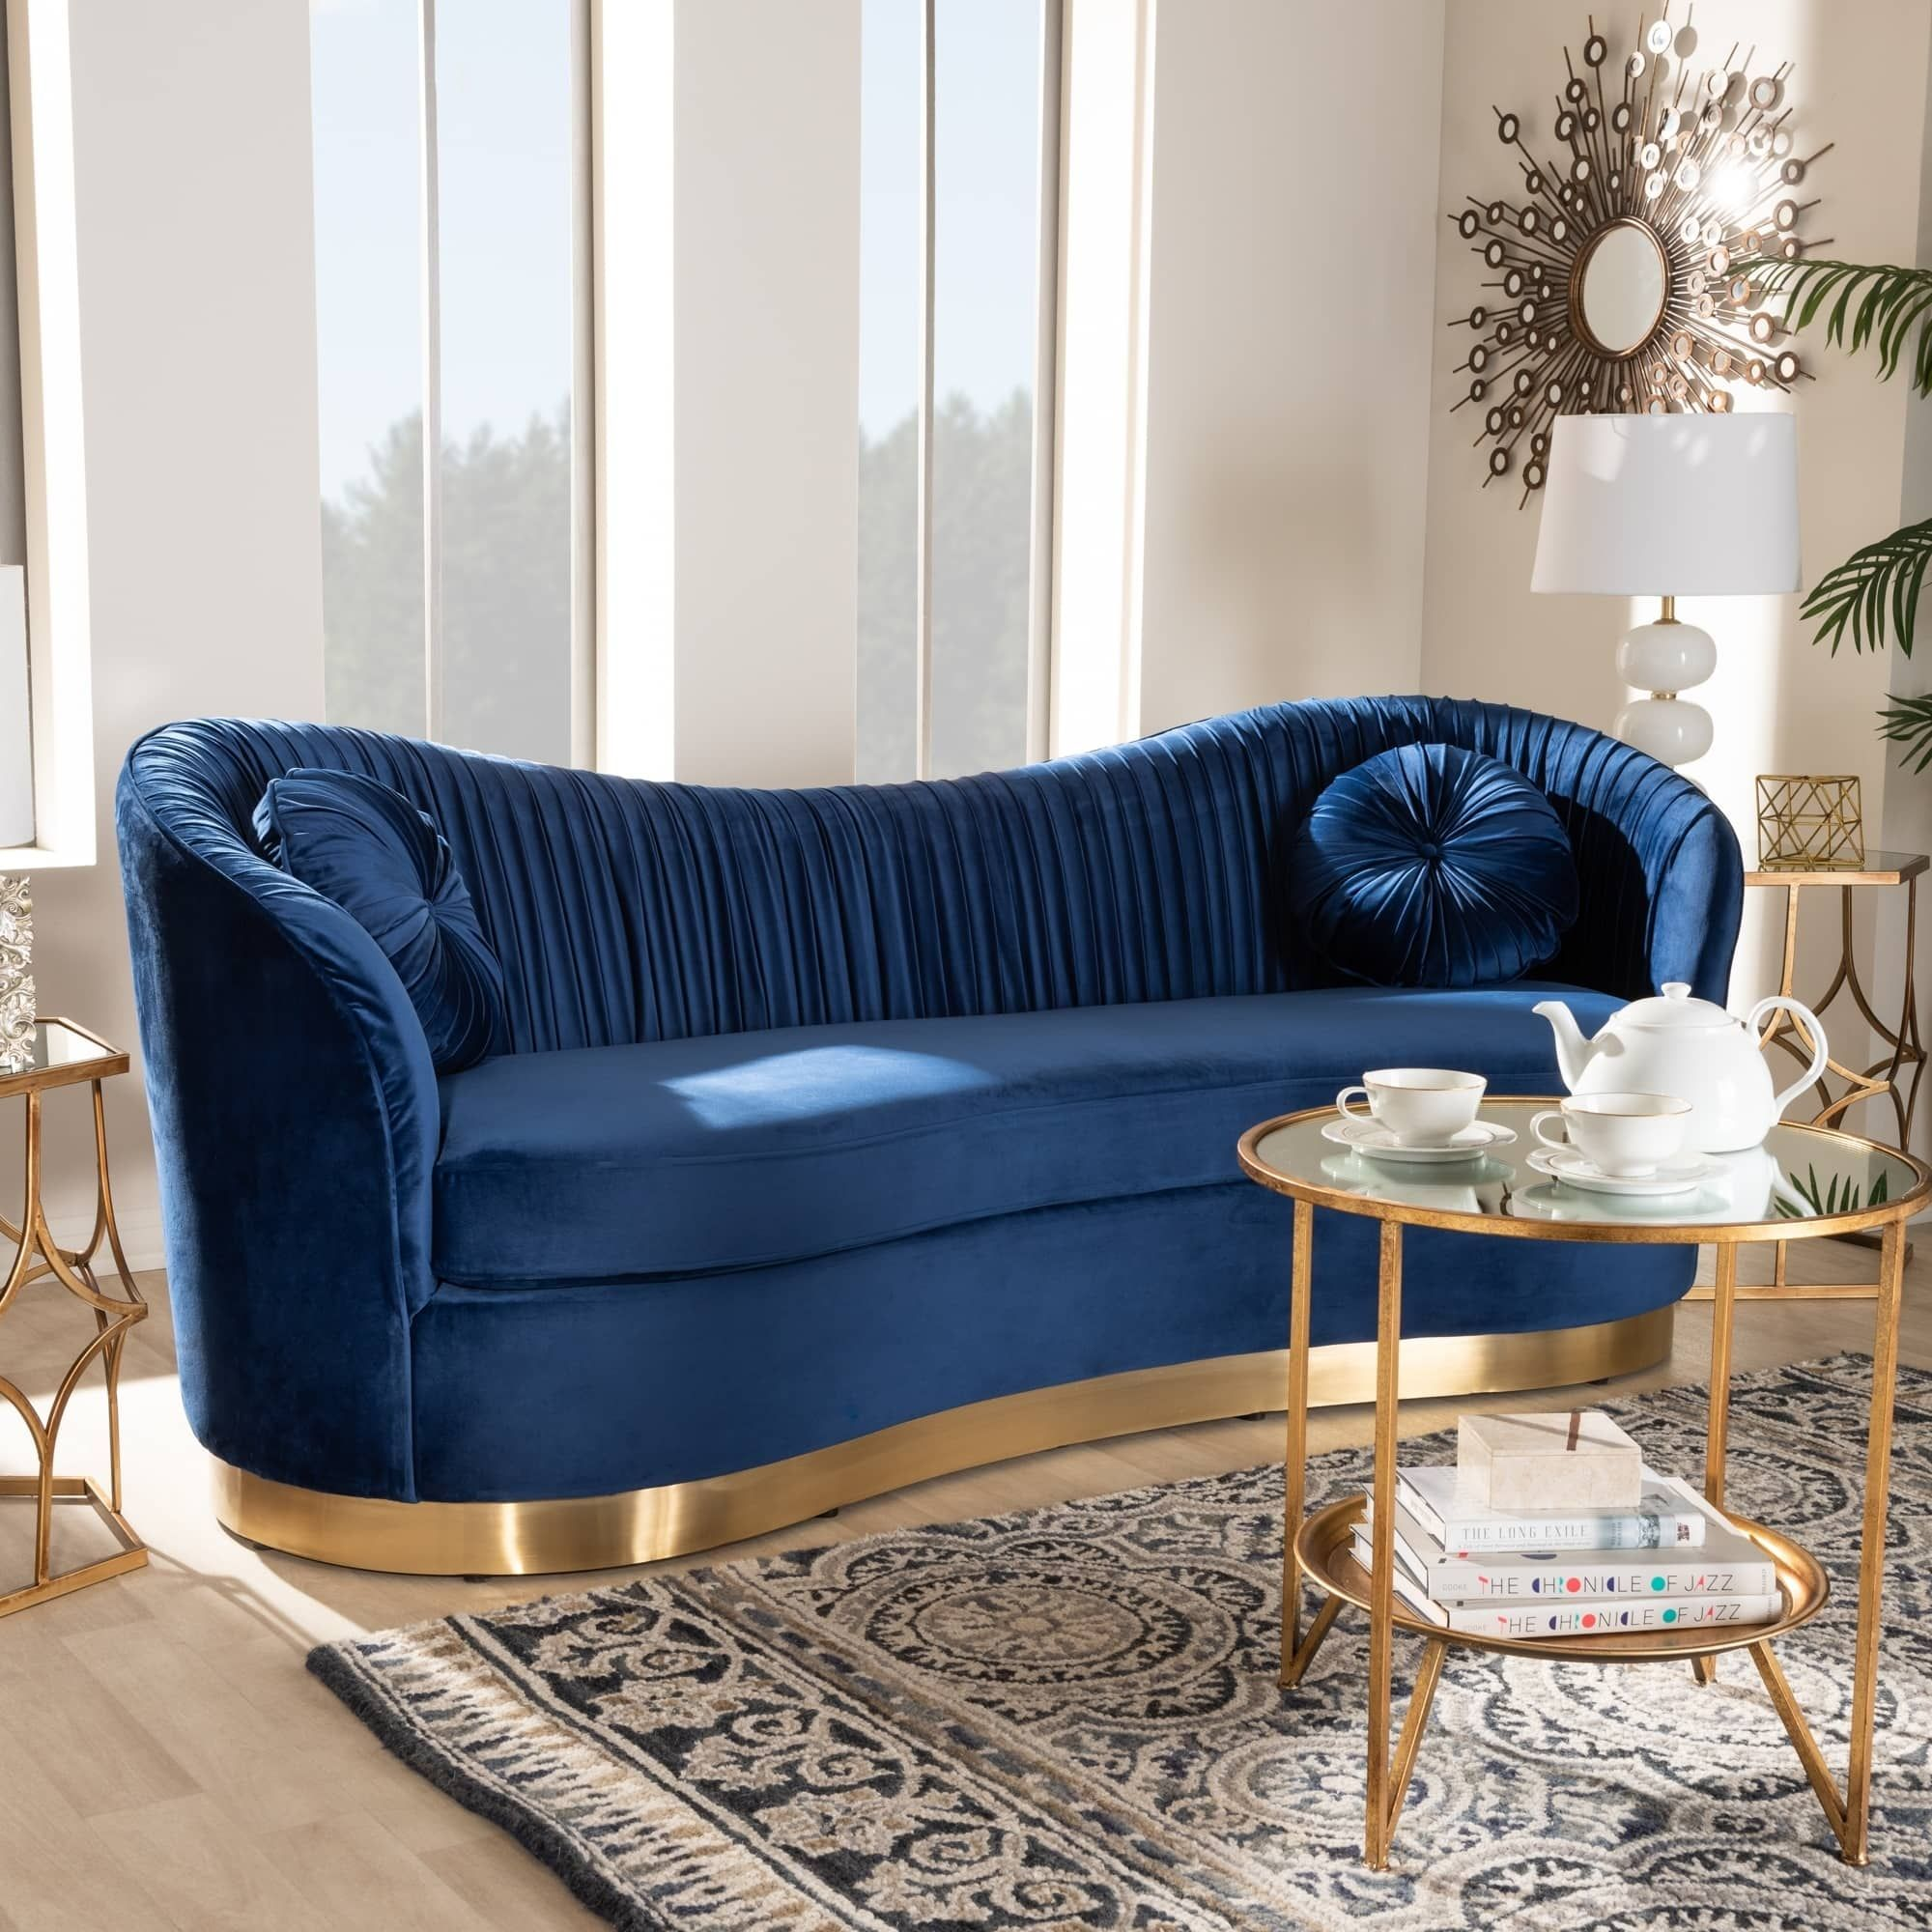 Buy Sofas Couches Online At Overstock Our Best Living